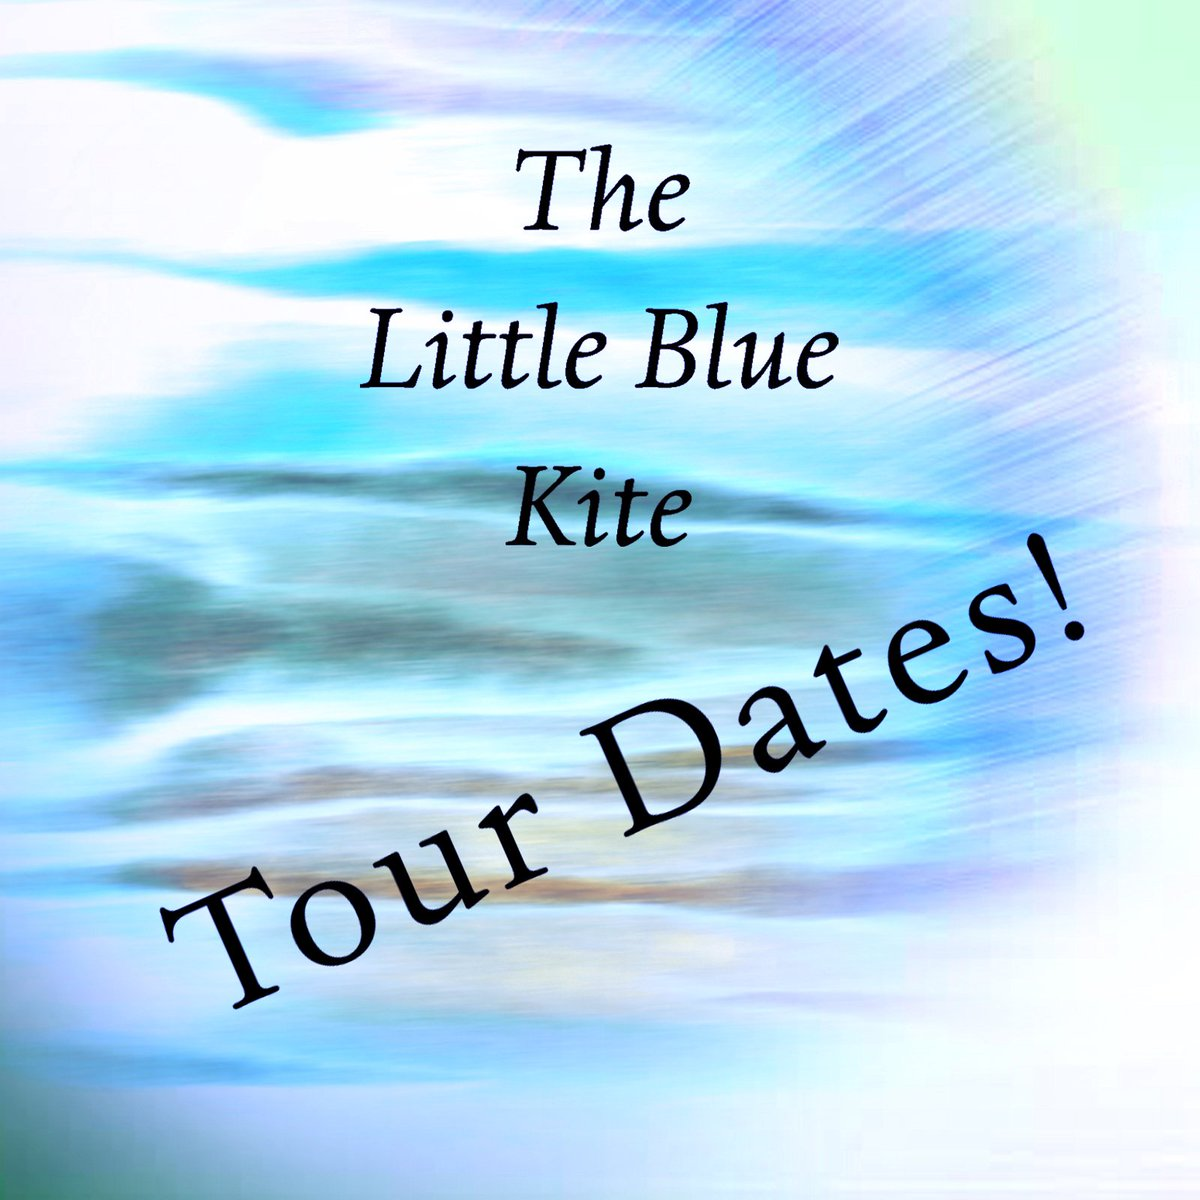 See you there! THE LITTLE BLUE KITE TOUR facebook.com/pg/MarkZDaniel…